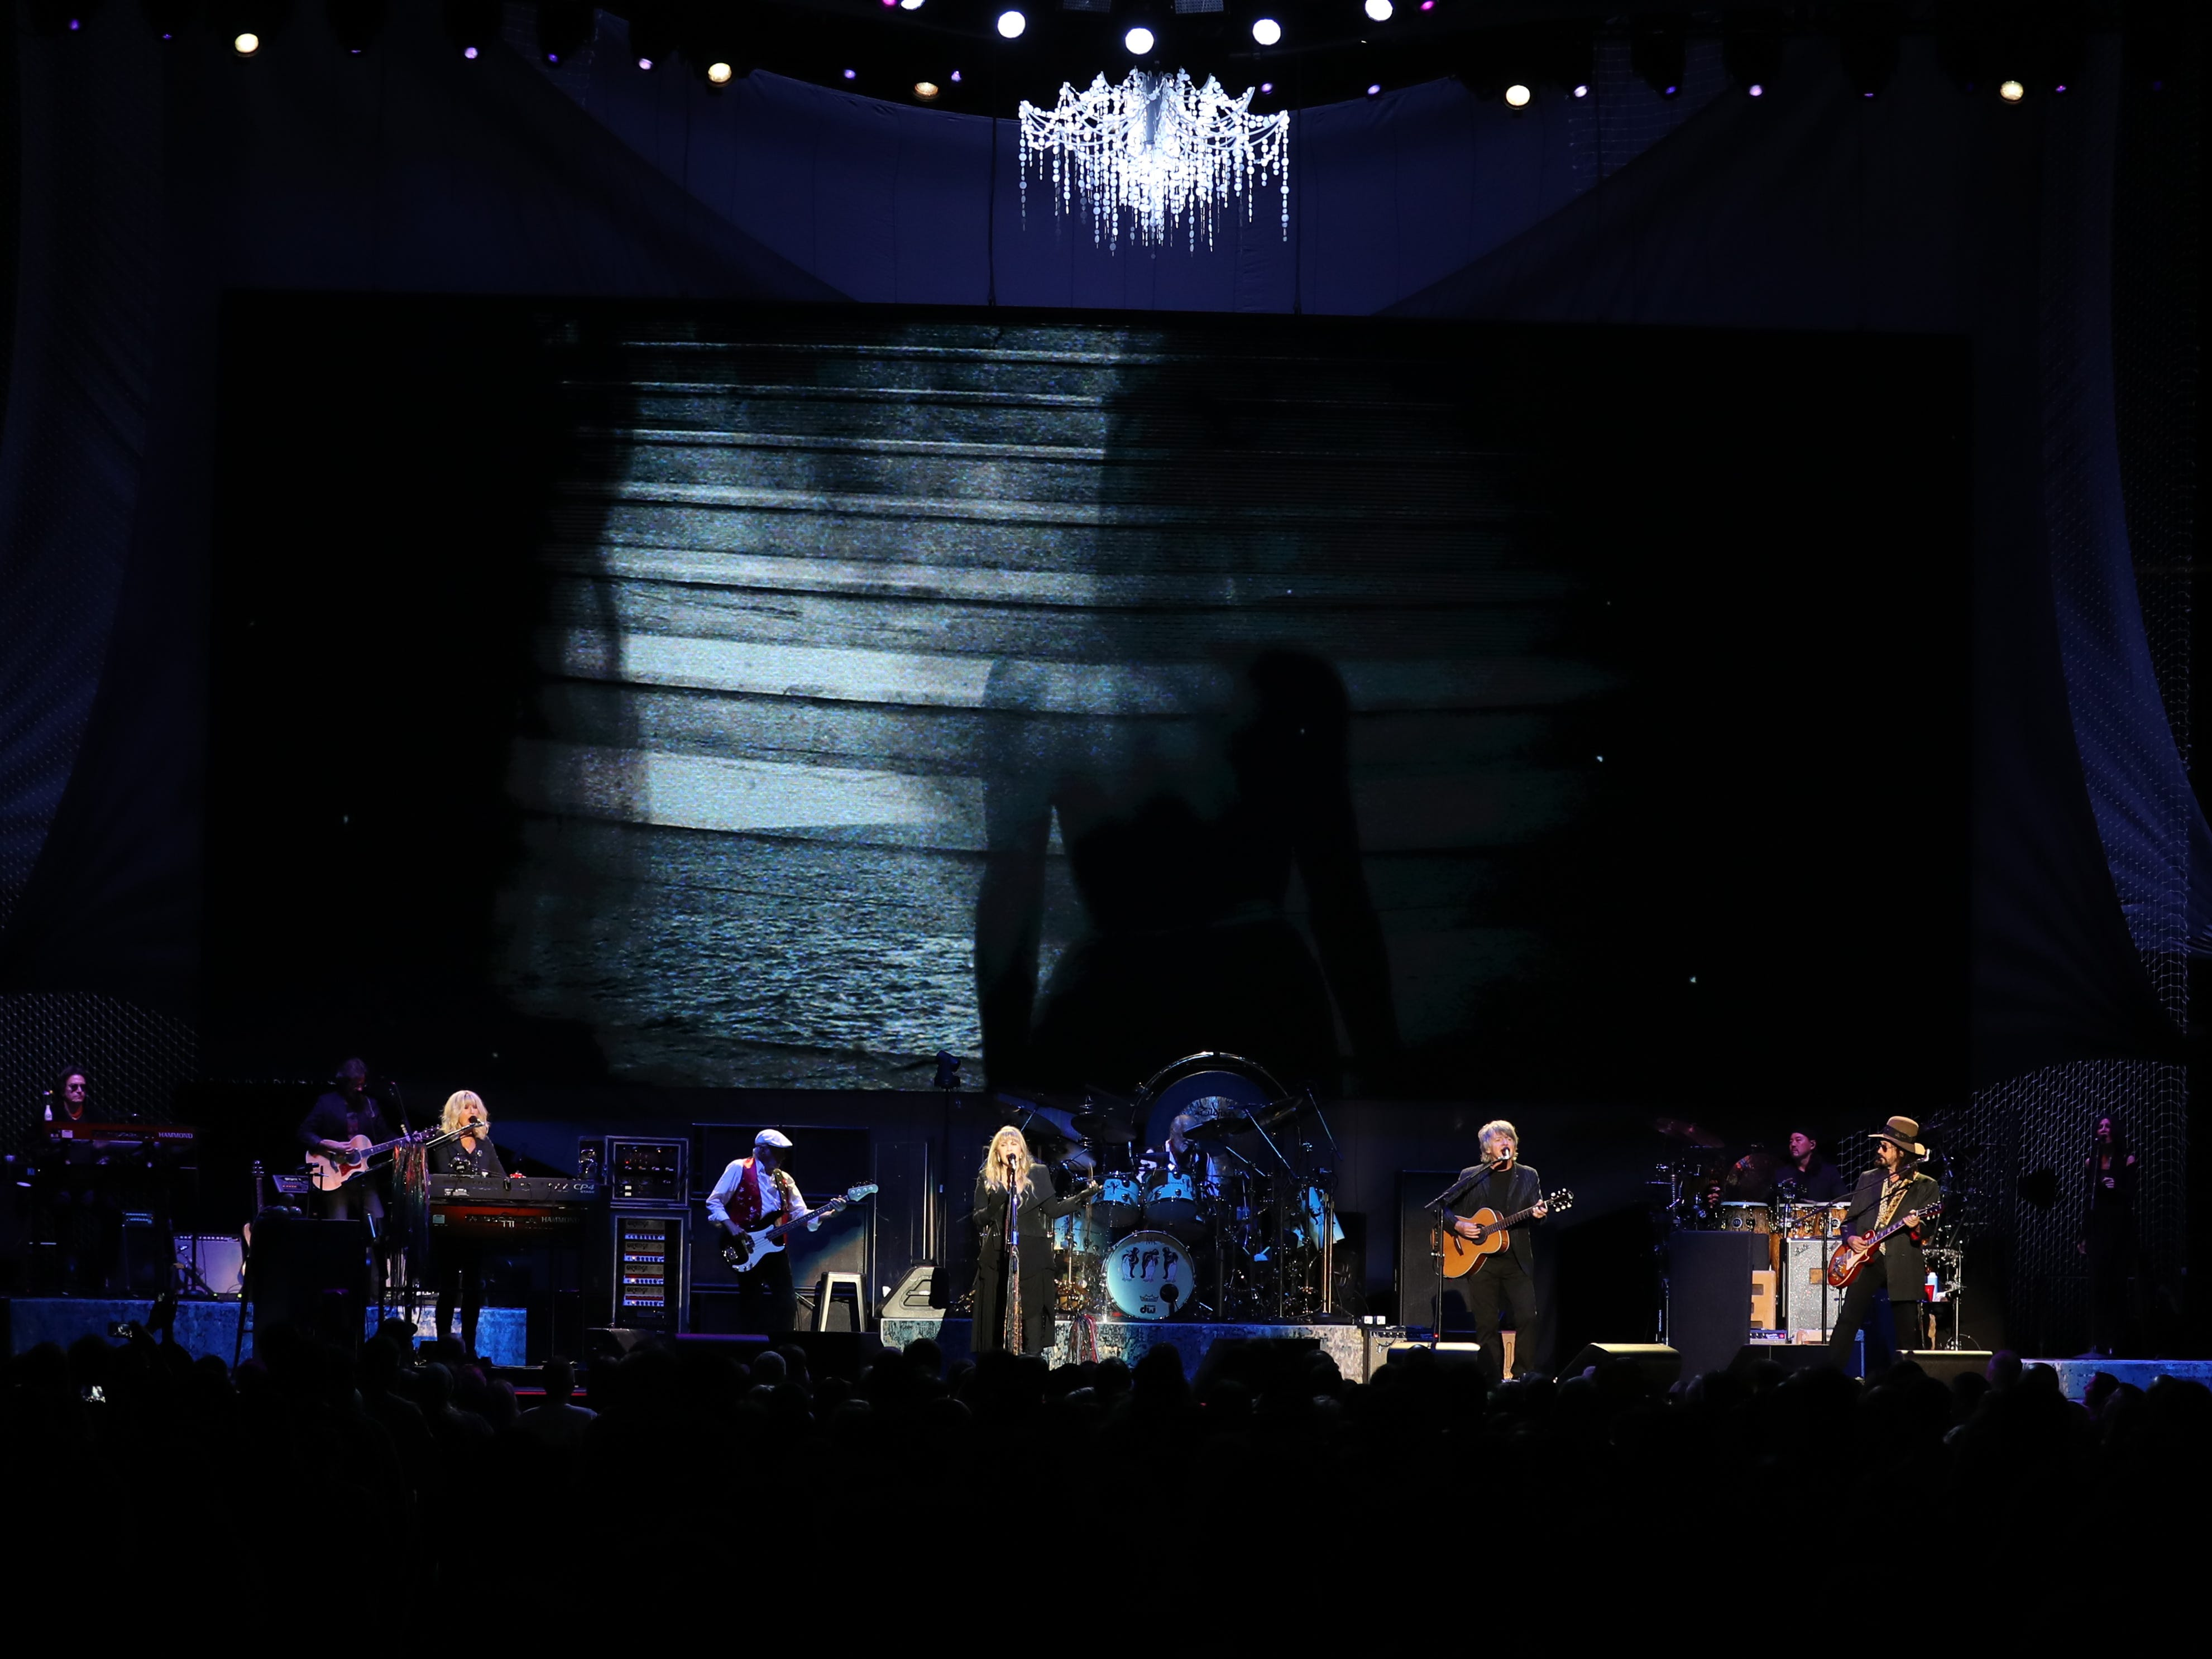 Fleetwood Mac performs at Wells Fargo Arena in Des Moines, Iowa on Oct. 14, 2018.